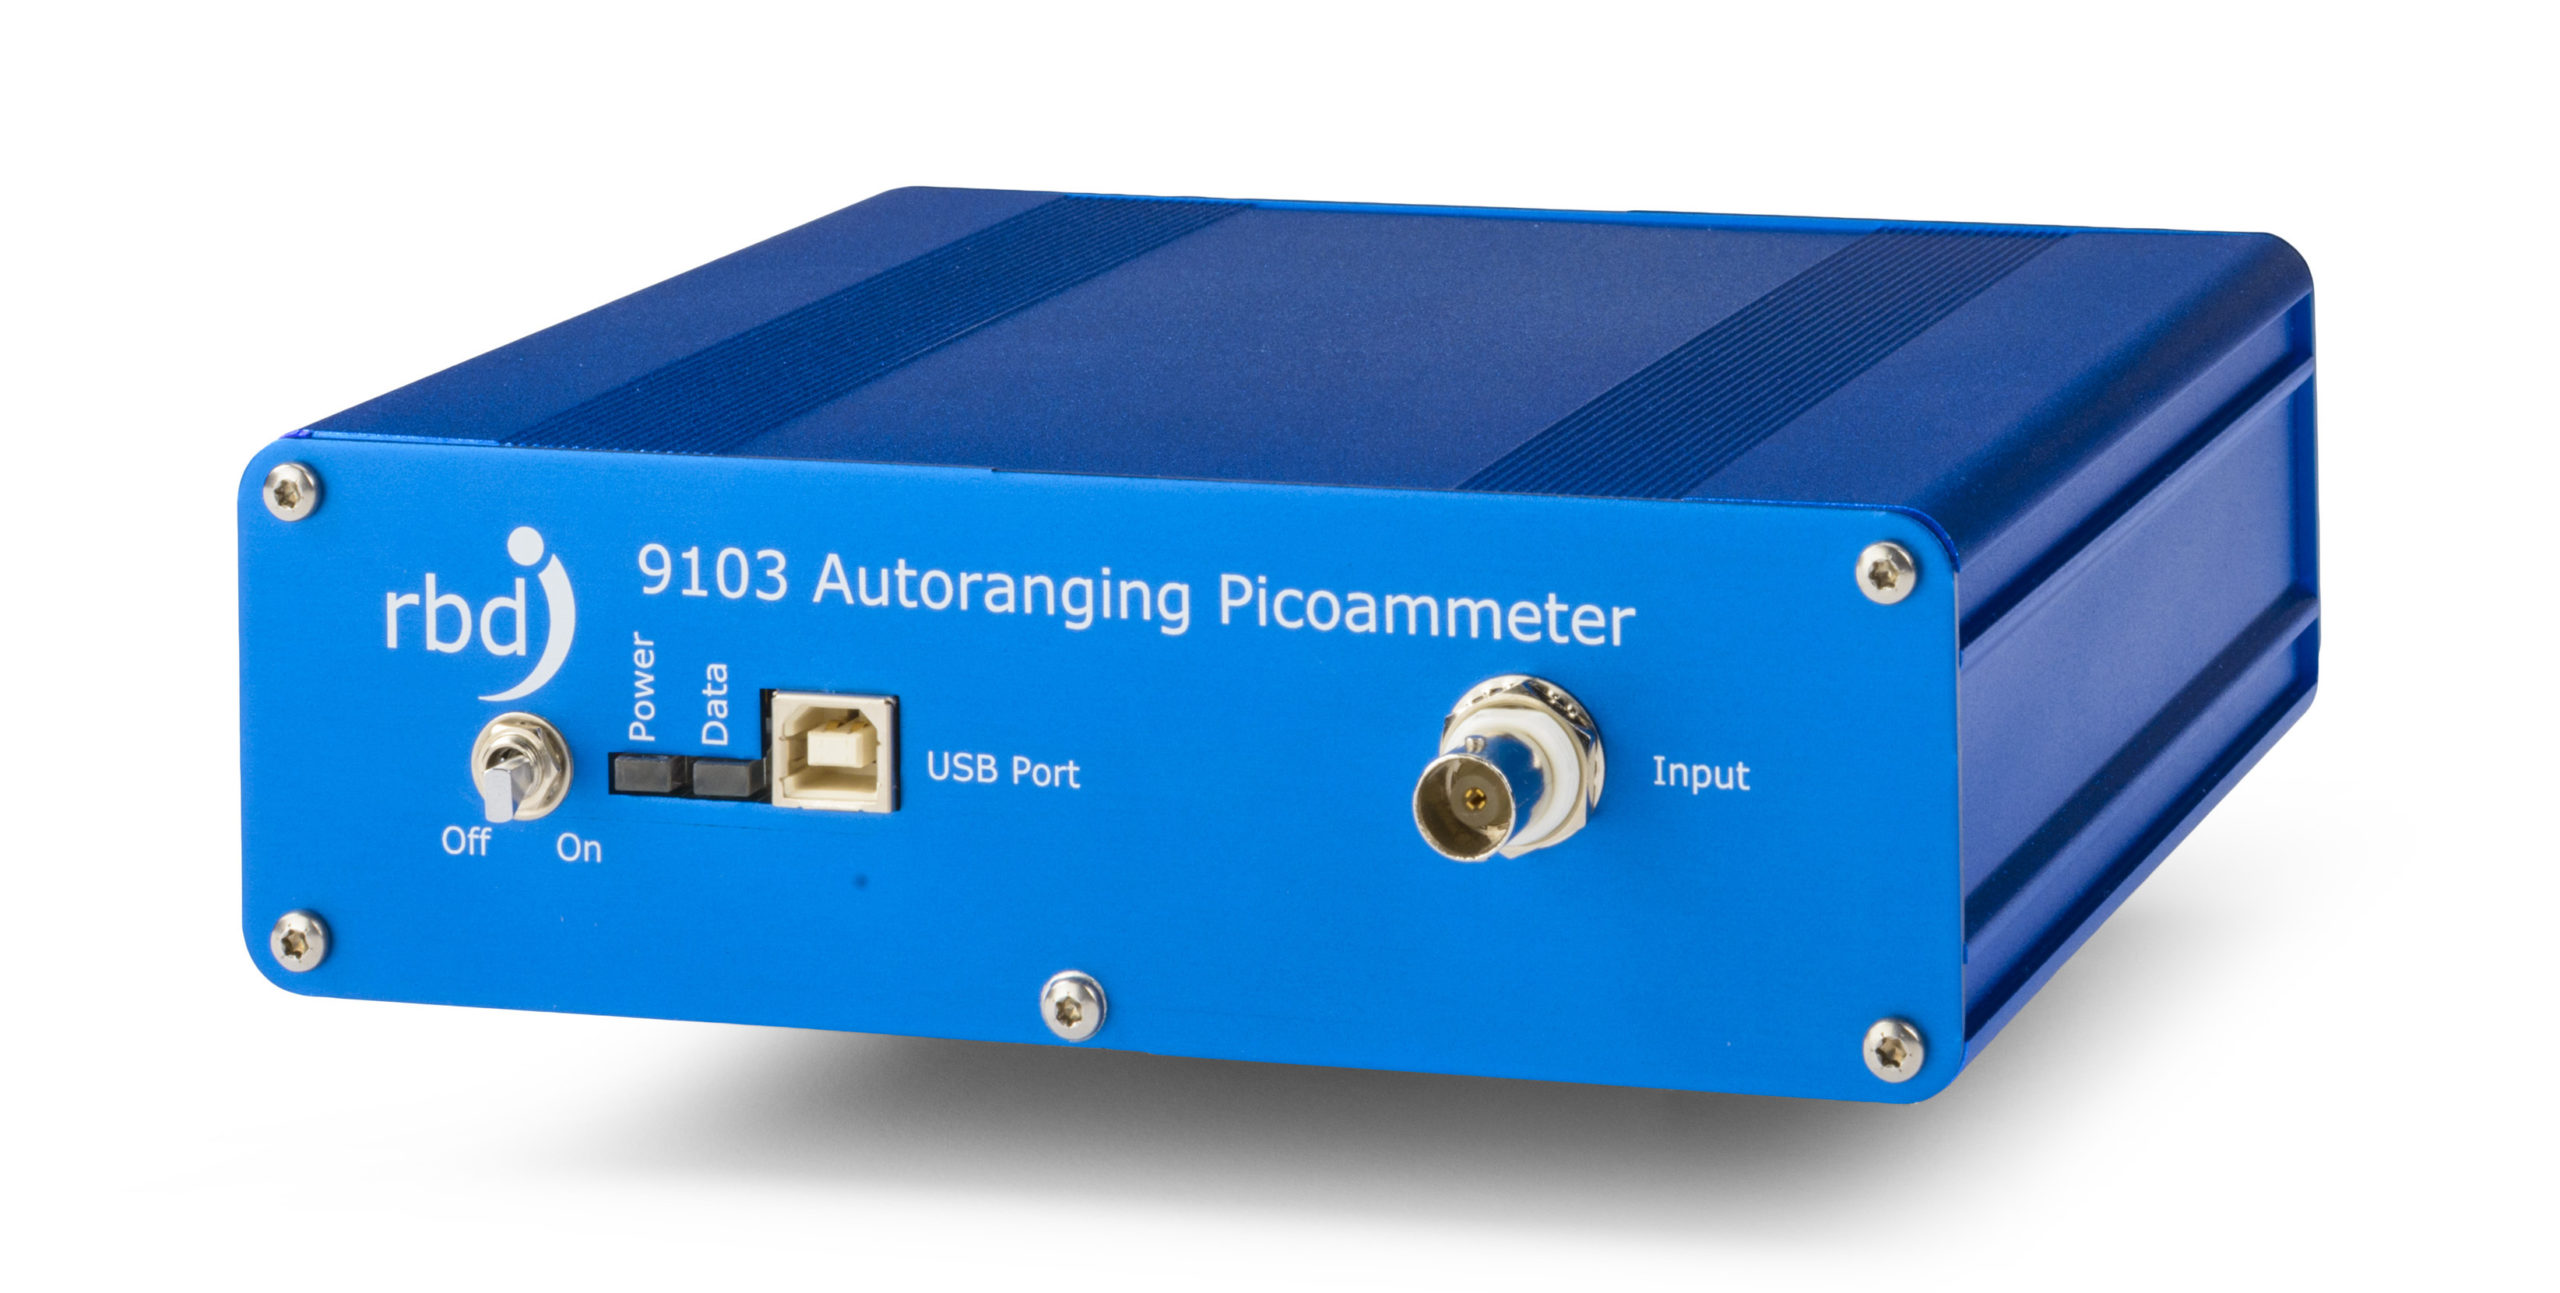 Saelig Introduces RBD 9103 USB Graphing Picoammeter